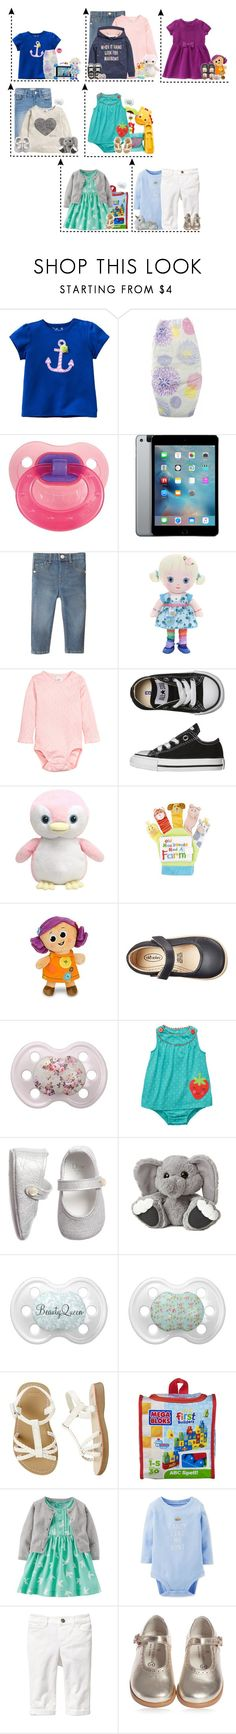 """""""Sem título #450"""" by lovetini6412 ❤ liked on Polyvore featuring Gymboree, The Honest Company, Fisher Price, Converse, Disney, Shabby Chic, Mega Bloks, Carter's and Old Navy"""